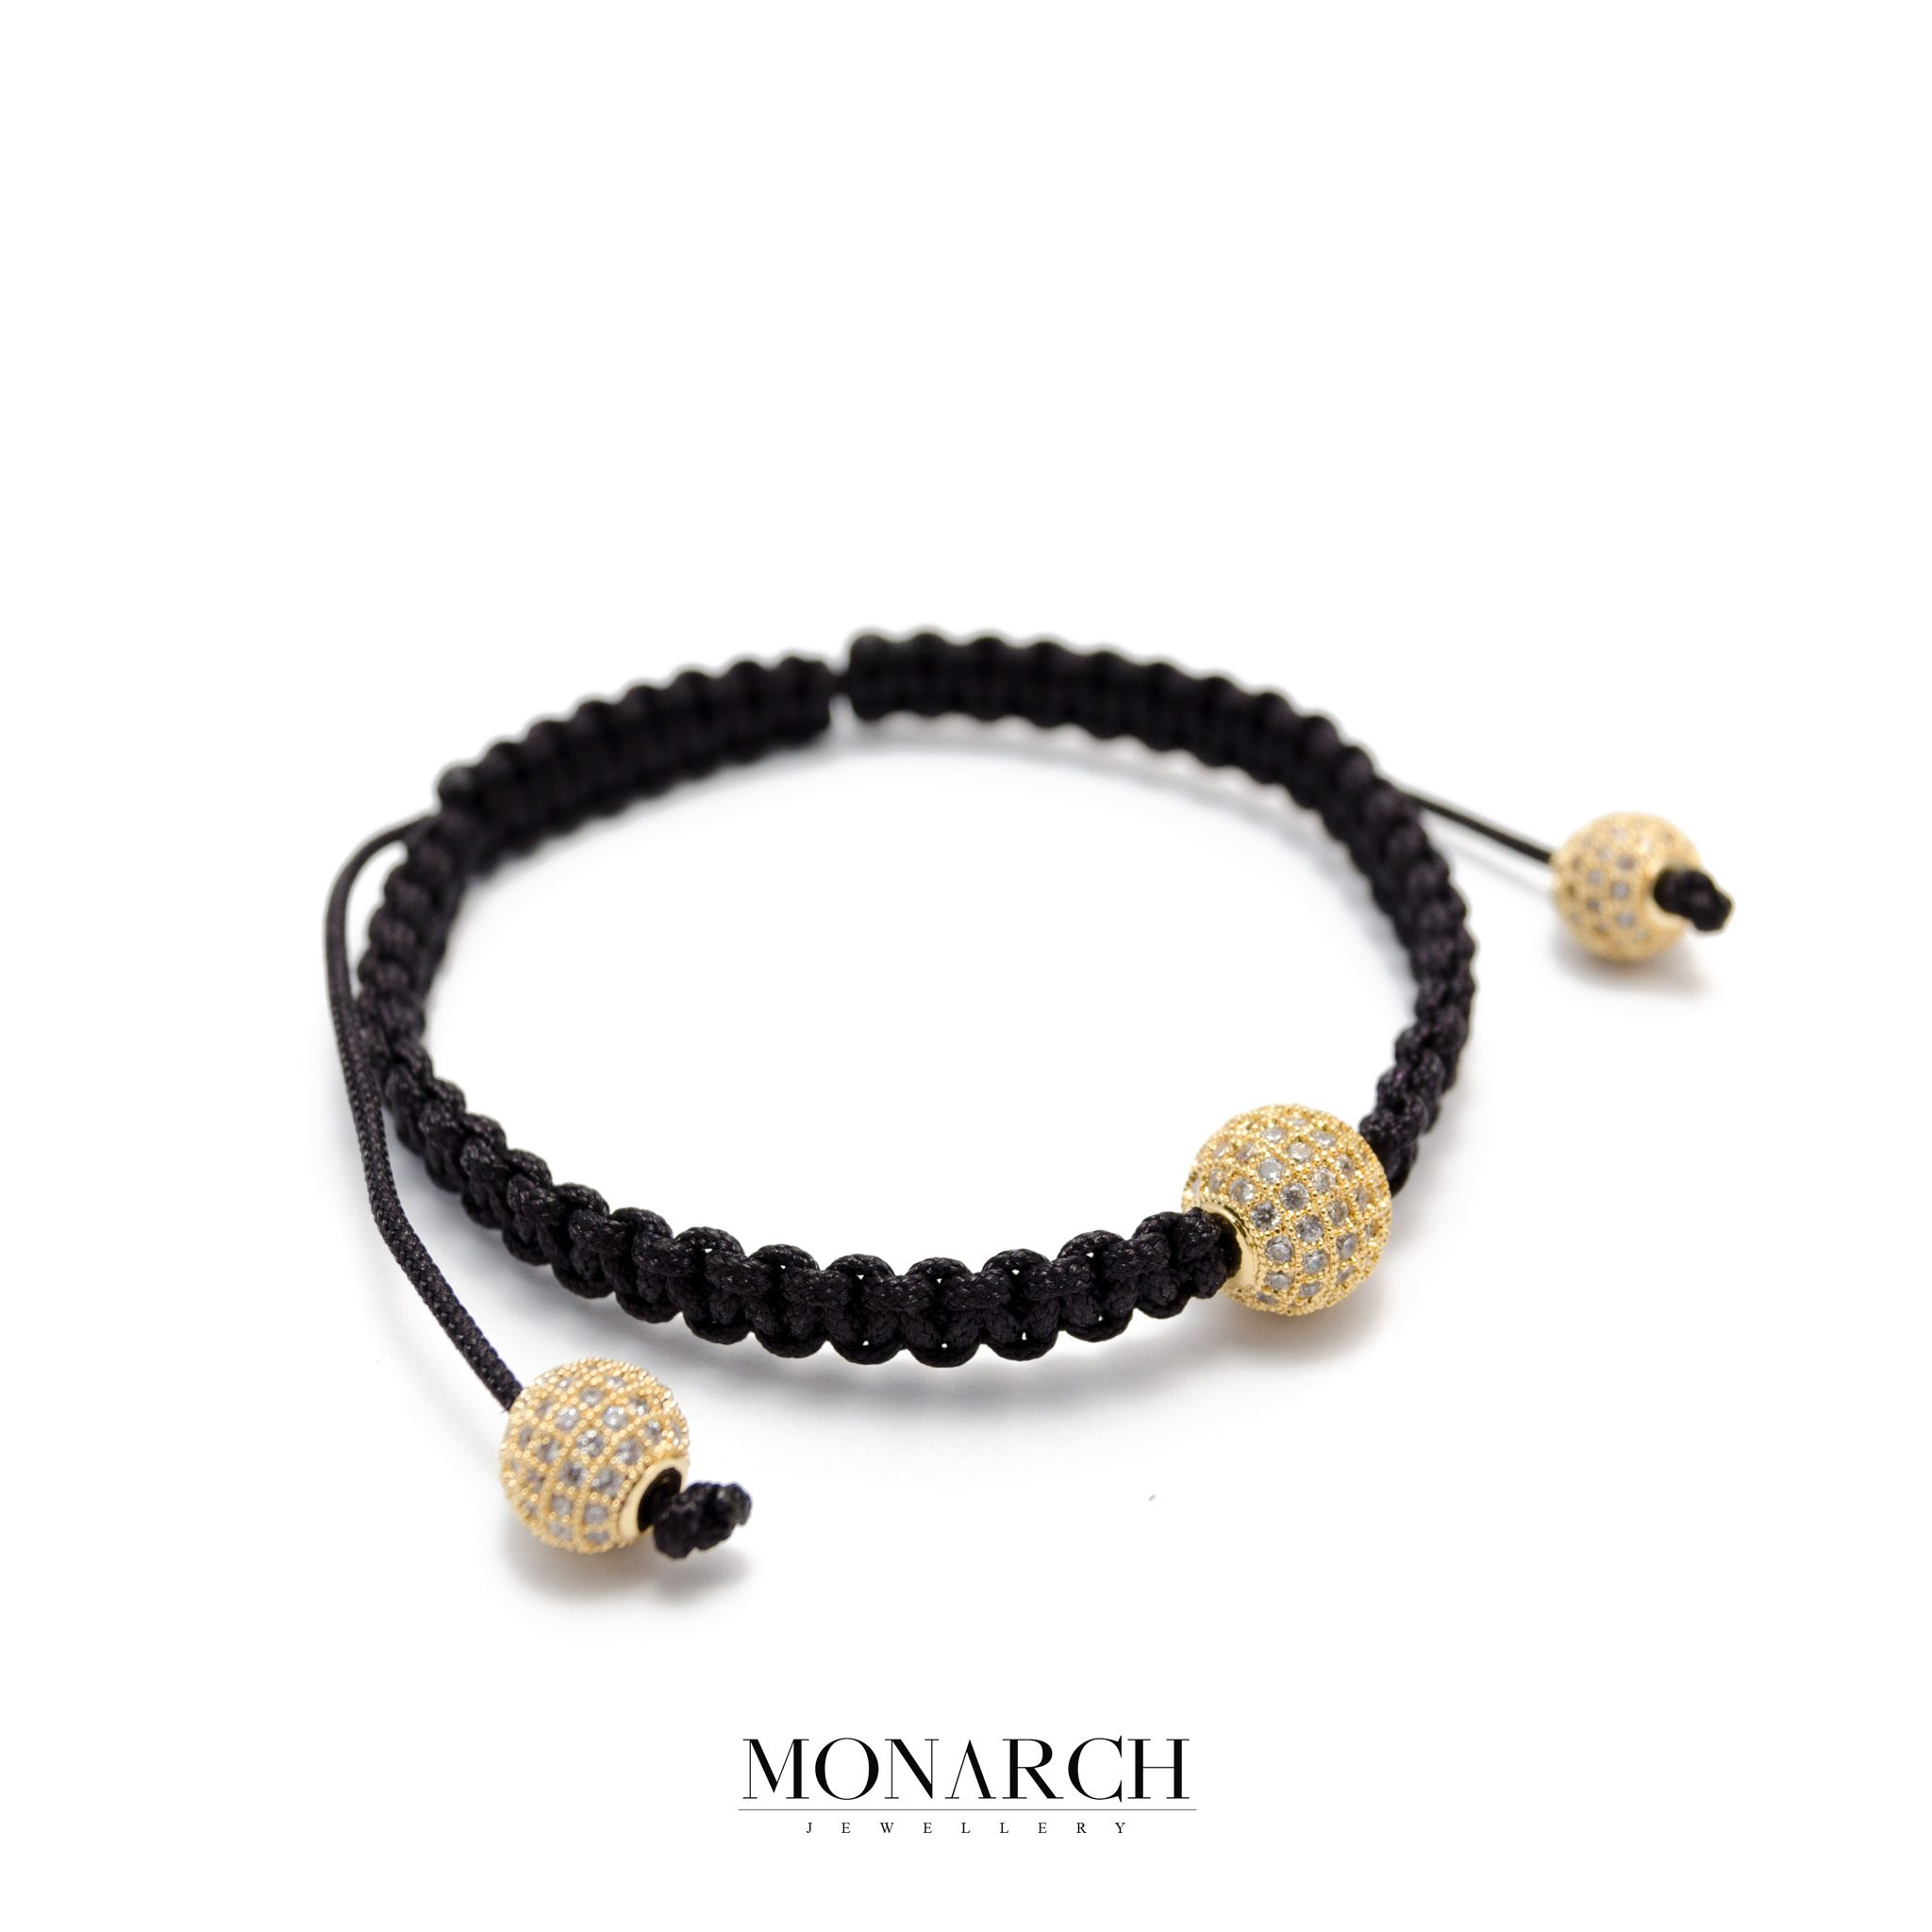 32-Monarch-Jewellery-24k-Gold-White-Zircon-Macrame-Bracelet-resized